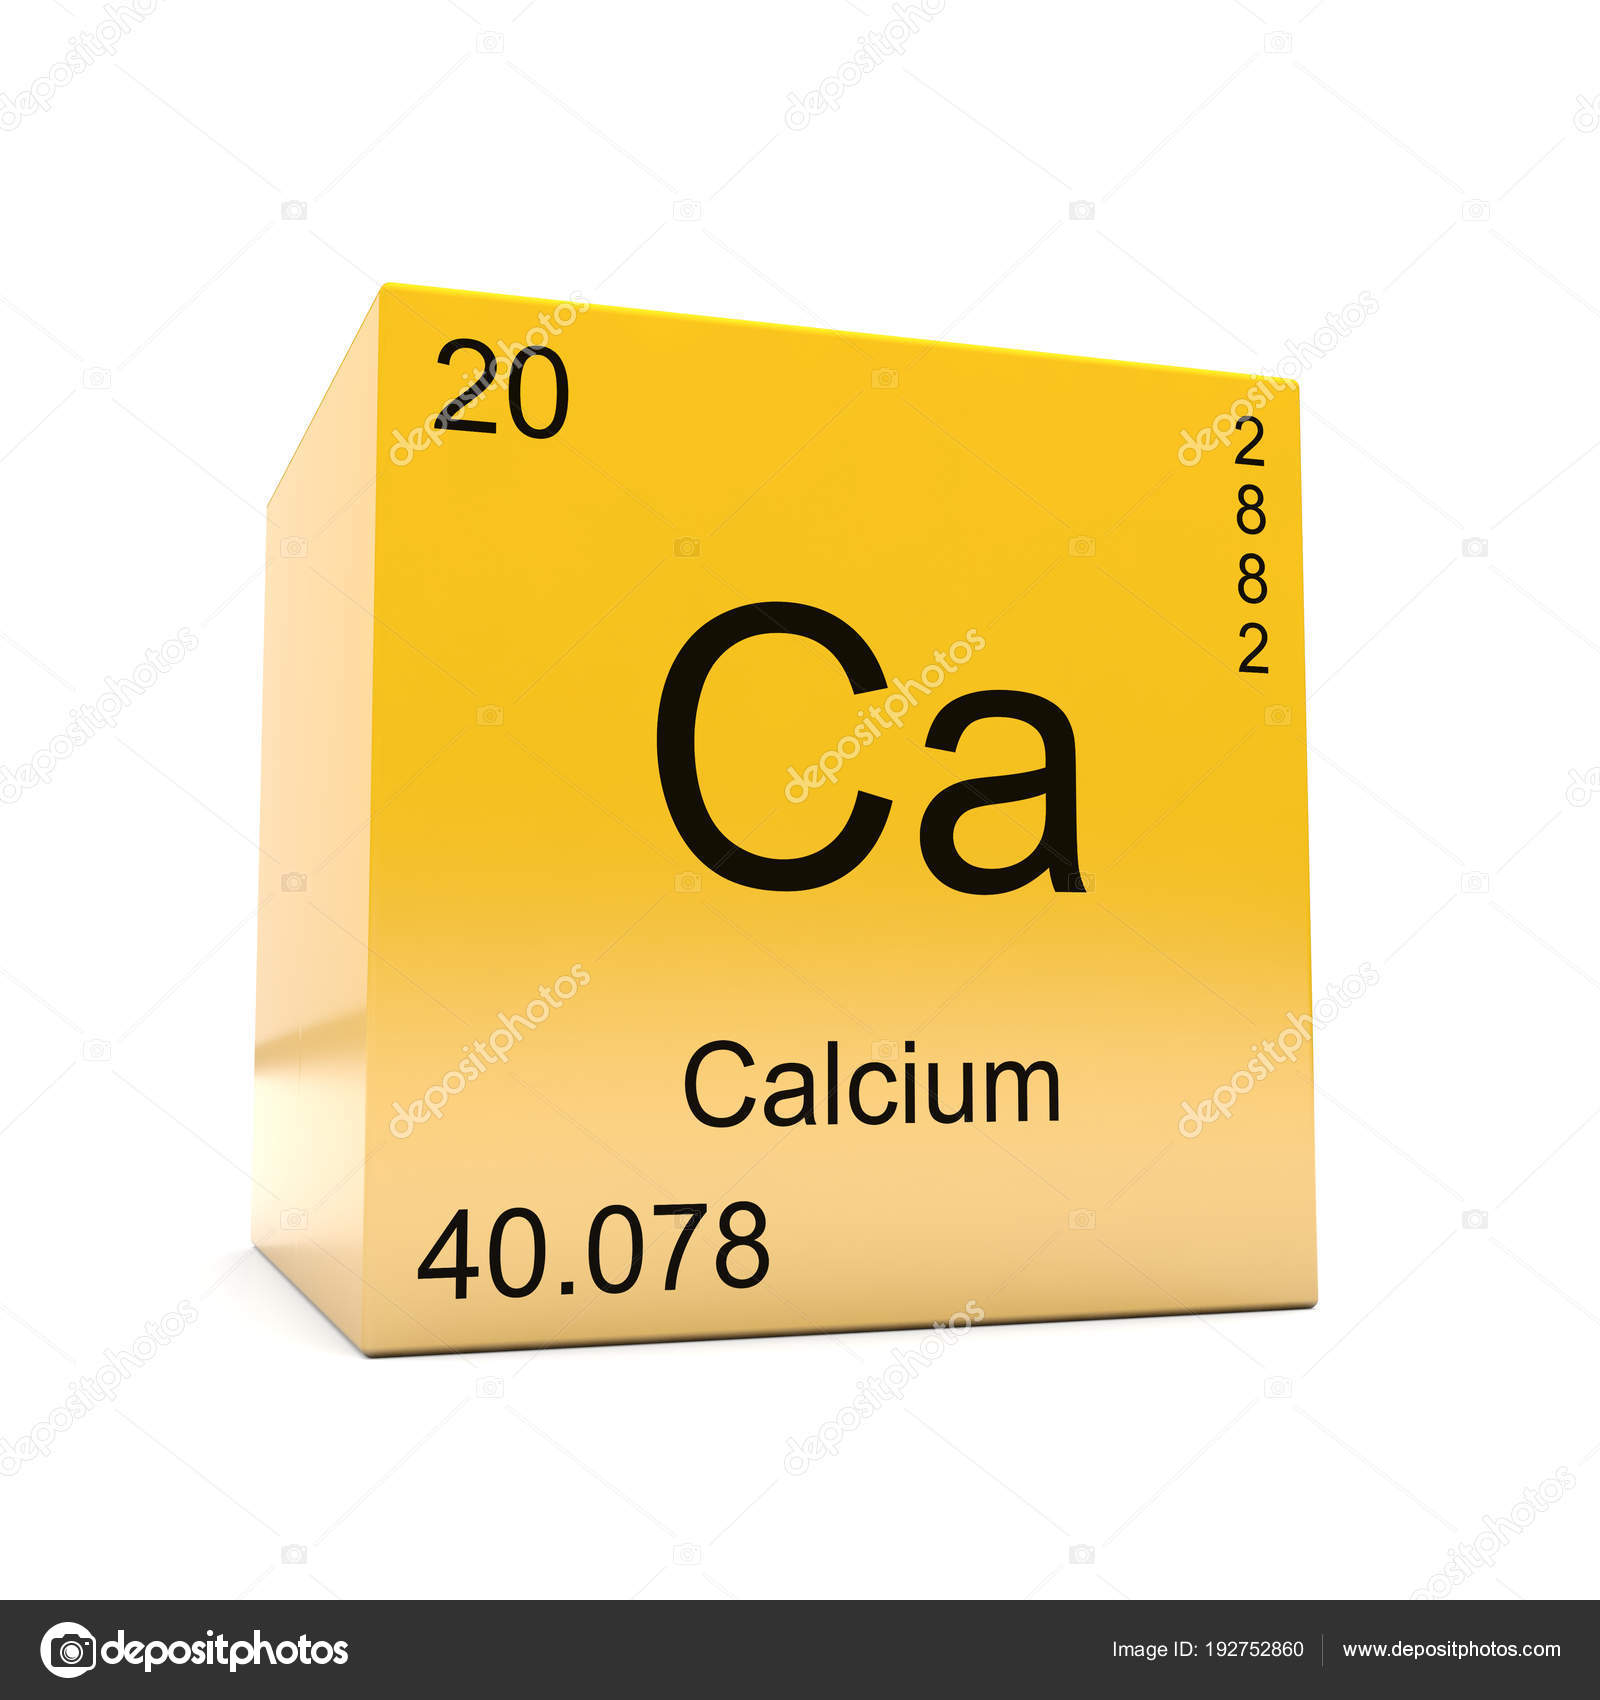 calcium element uses - HD 1600×1700